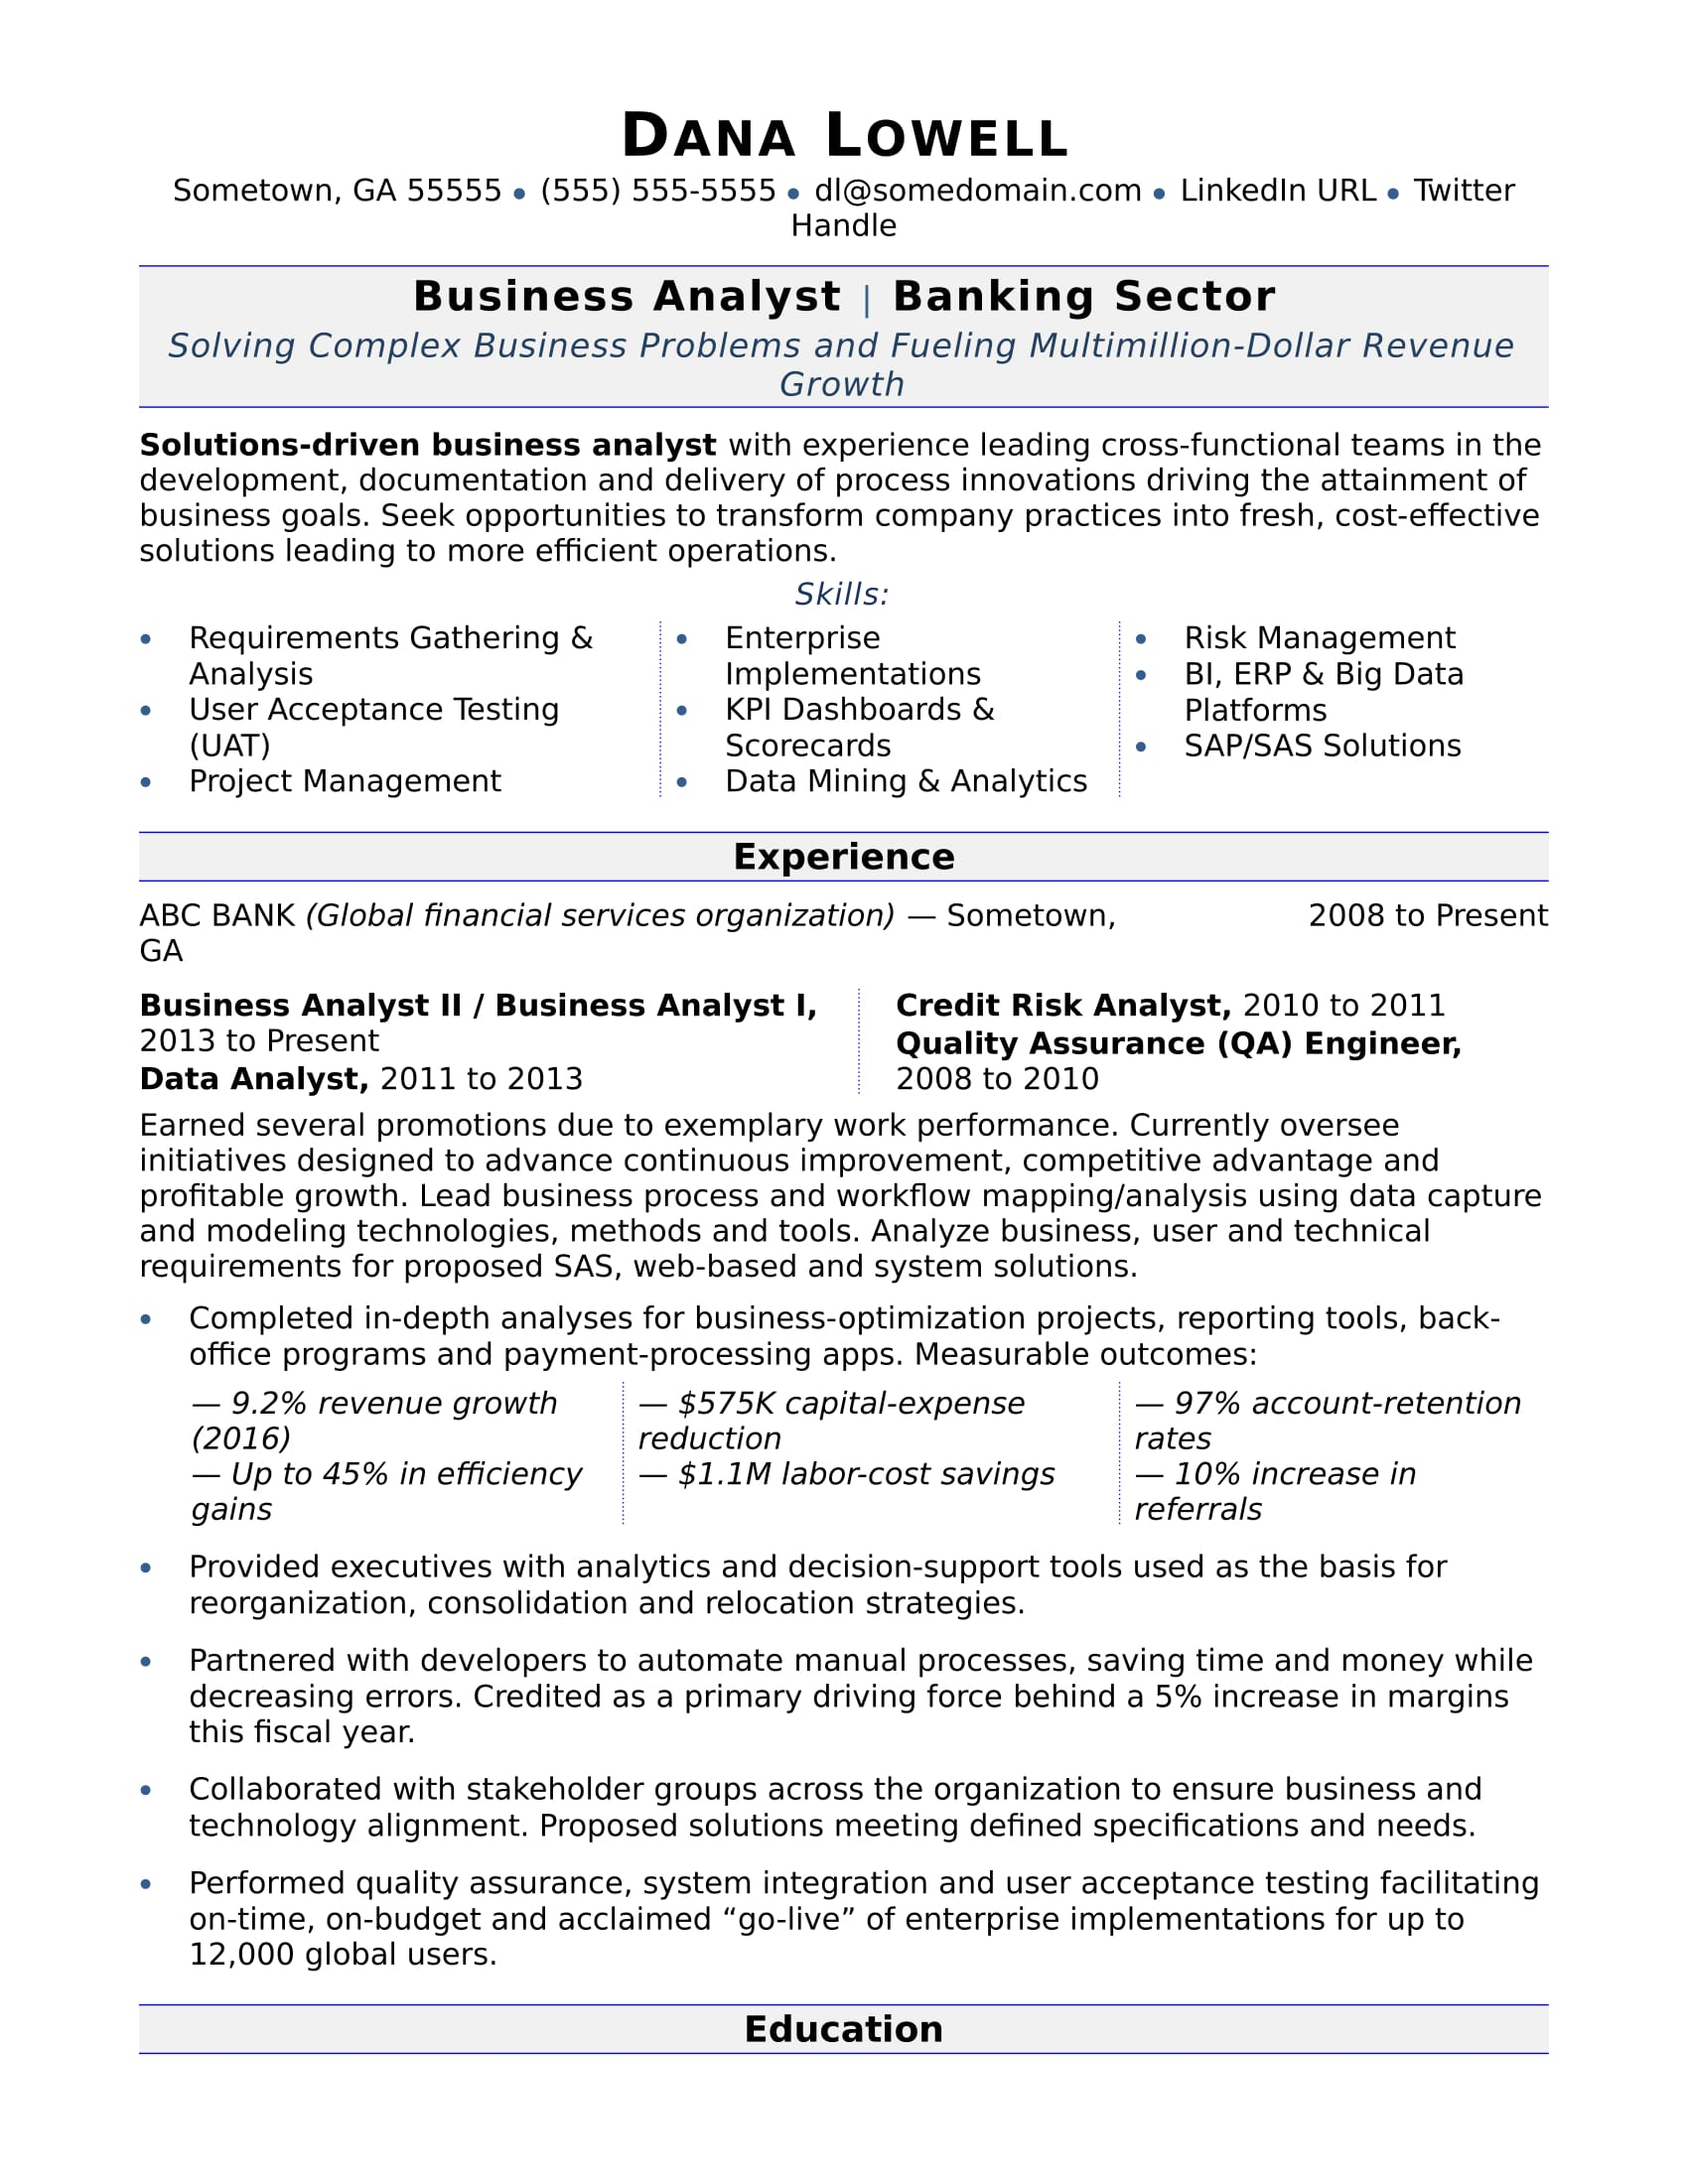 business analyst resume sample monster company format businessanalyst run through ats big Resume Company Resume Sample Format